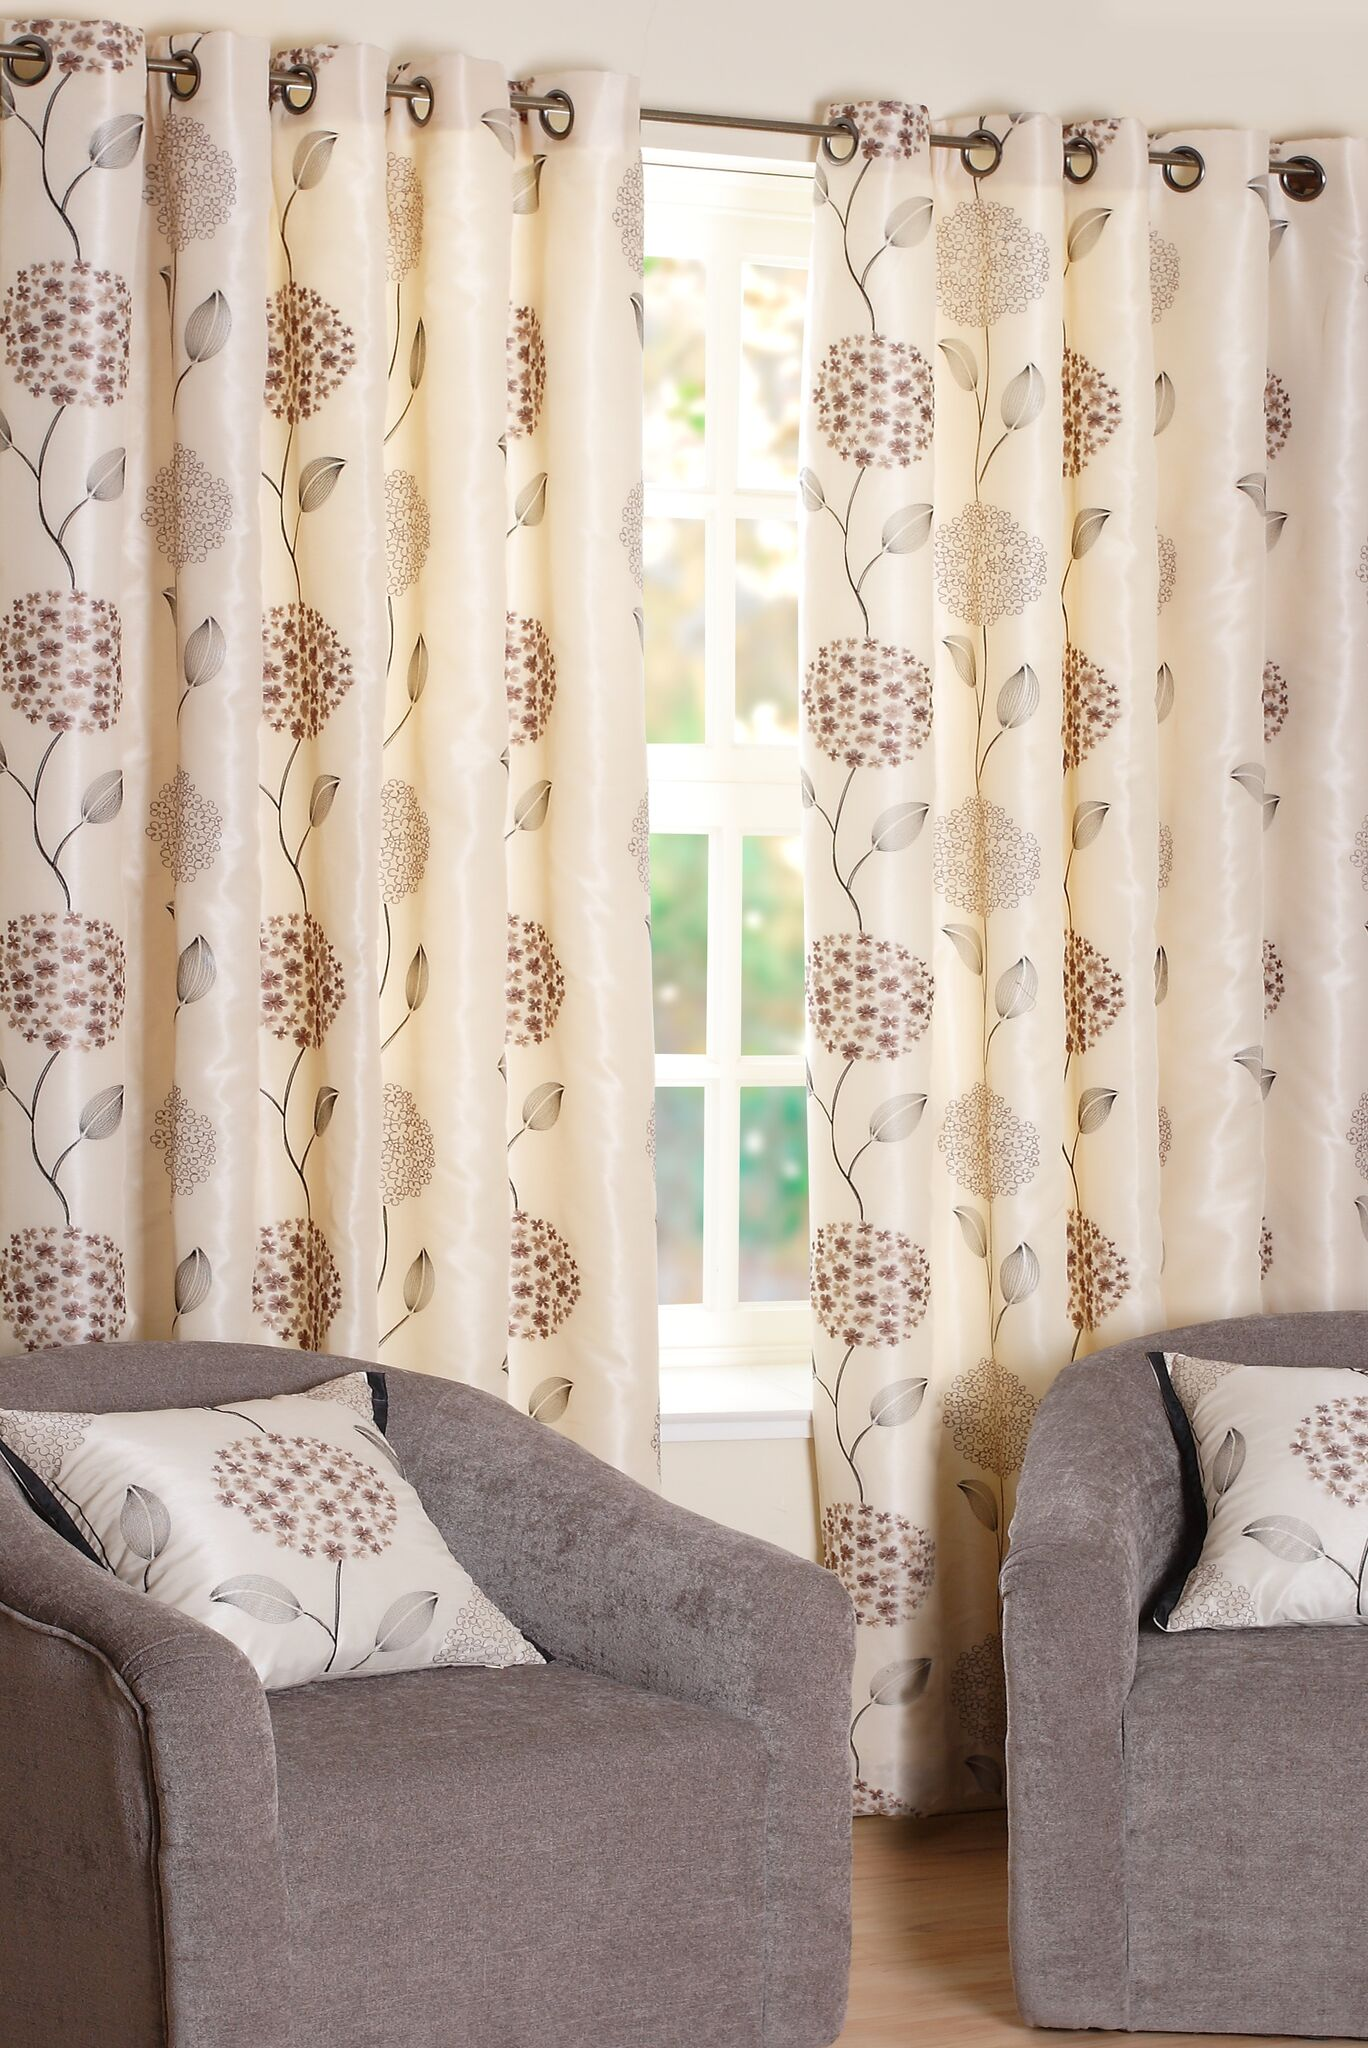 tac heavy serenity beauty textile made header tennby zorluteks of curtains ready light curtain